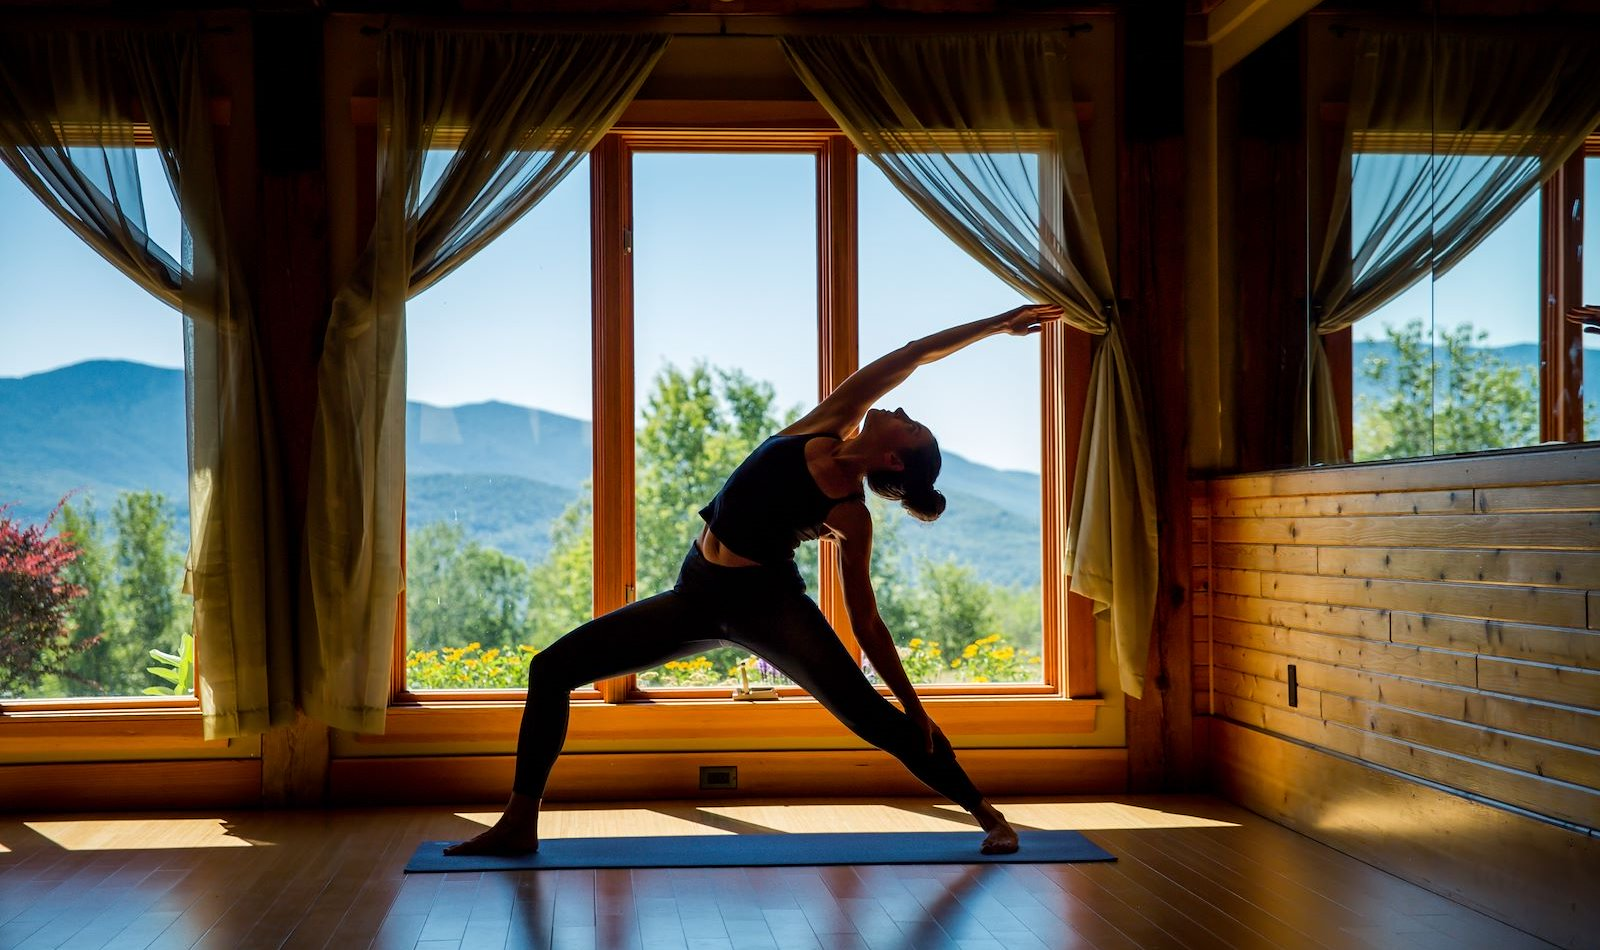 Yoga at Trapp Family Lodge Fitness Center